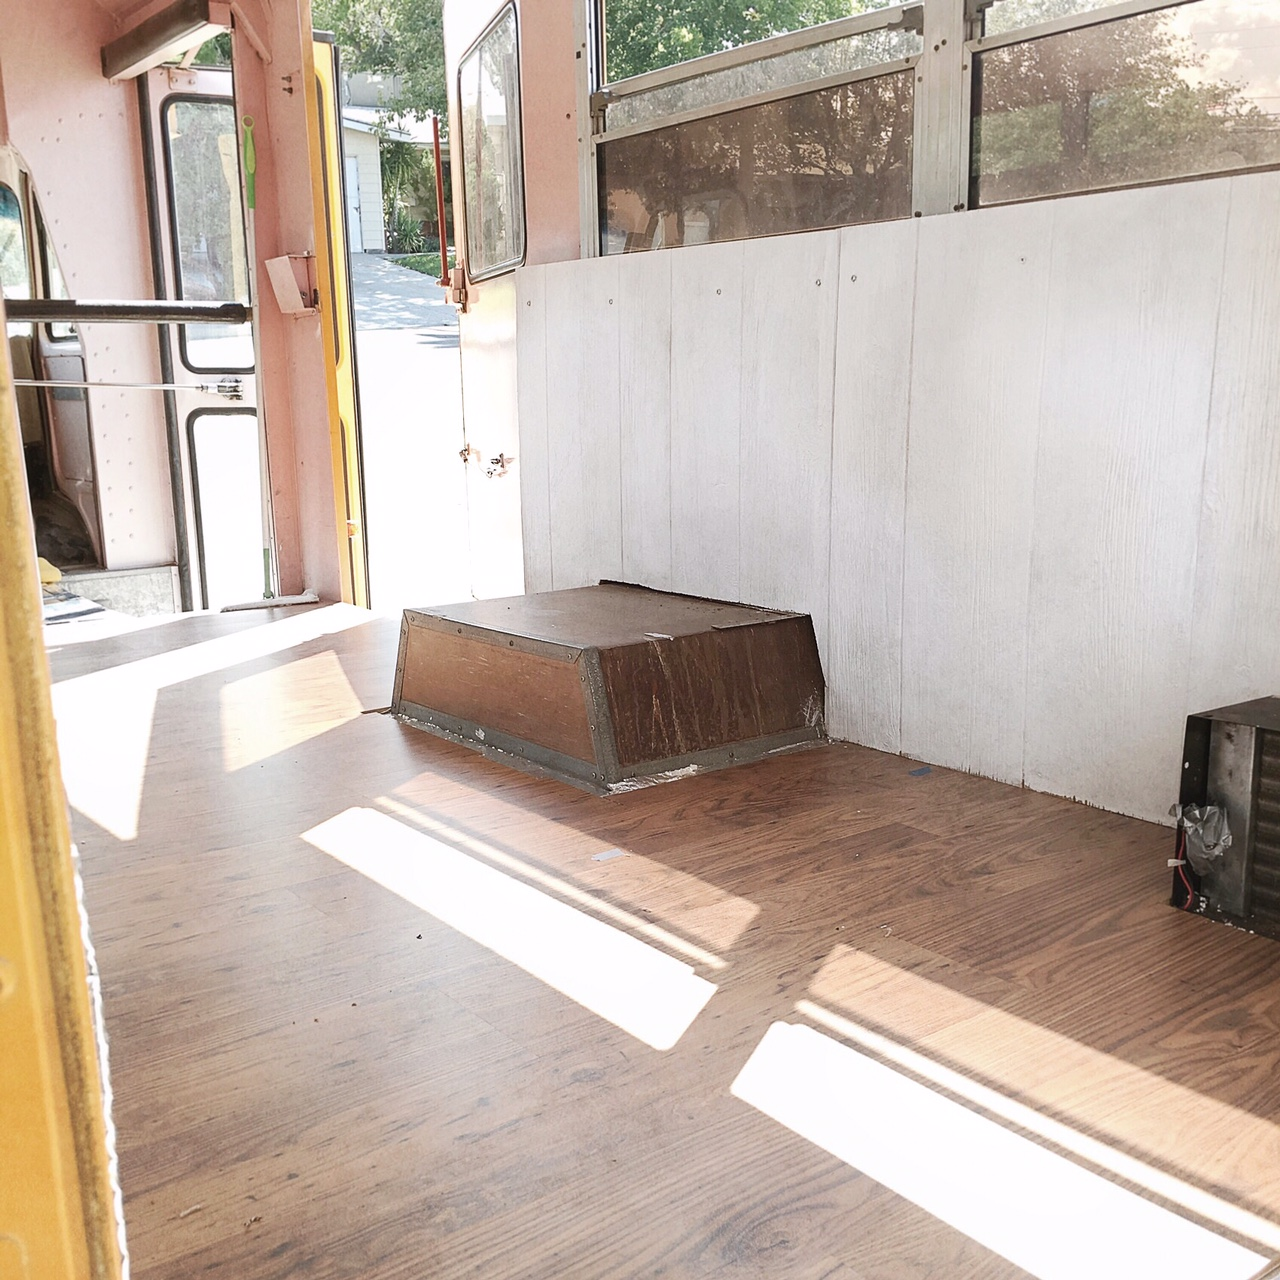 Floor and side walls.